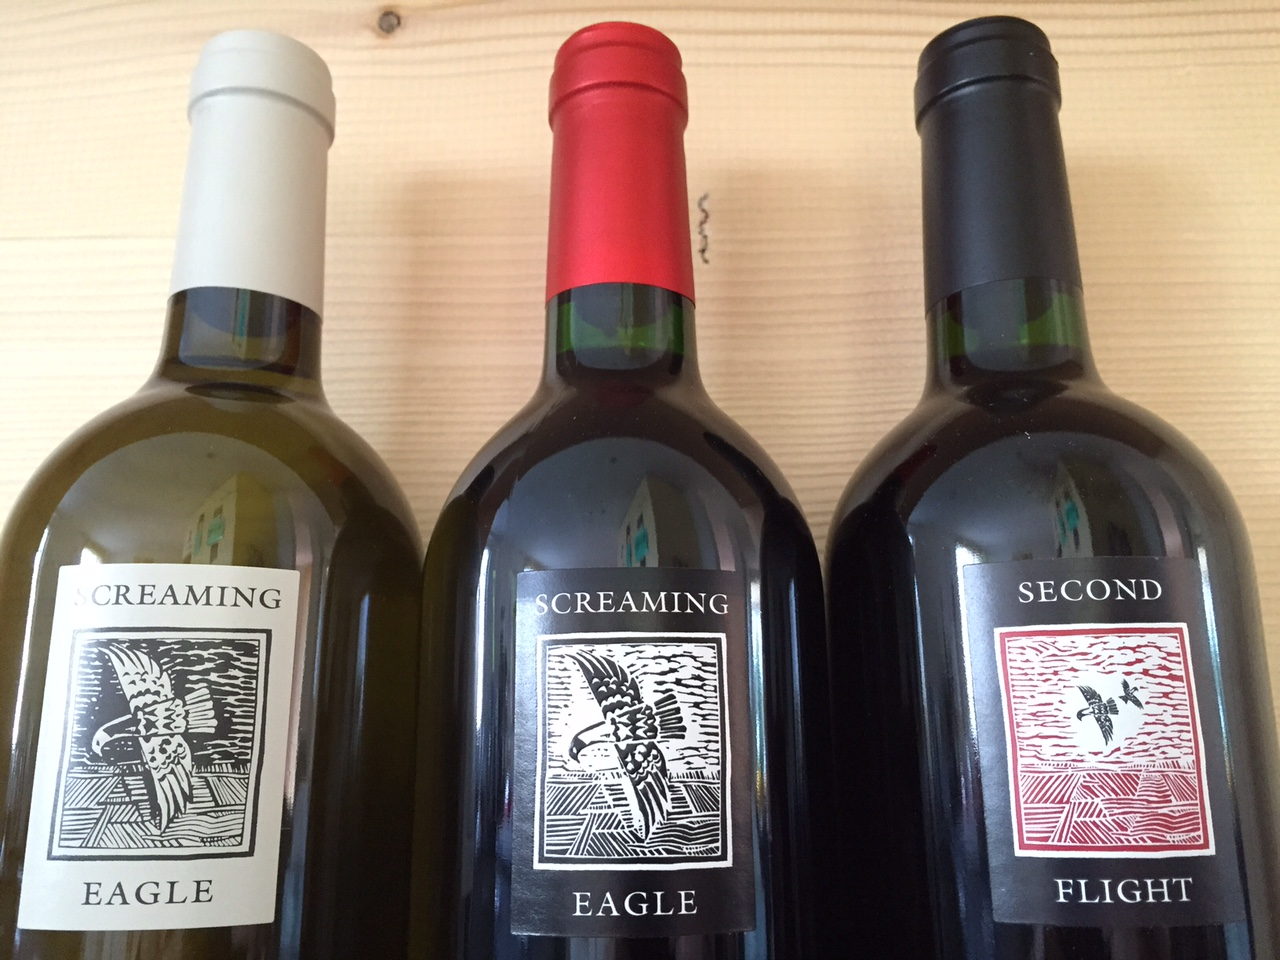 Screaming Eagle Trio (Sauvignon Blanc, Cabernet Sauvignon, Second Flight)